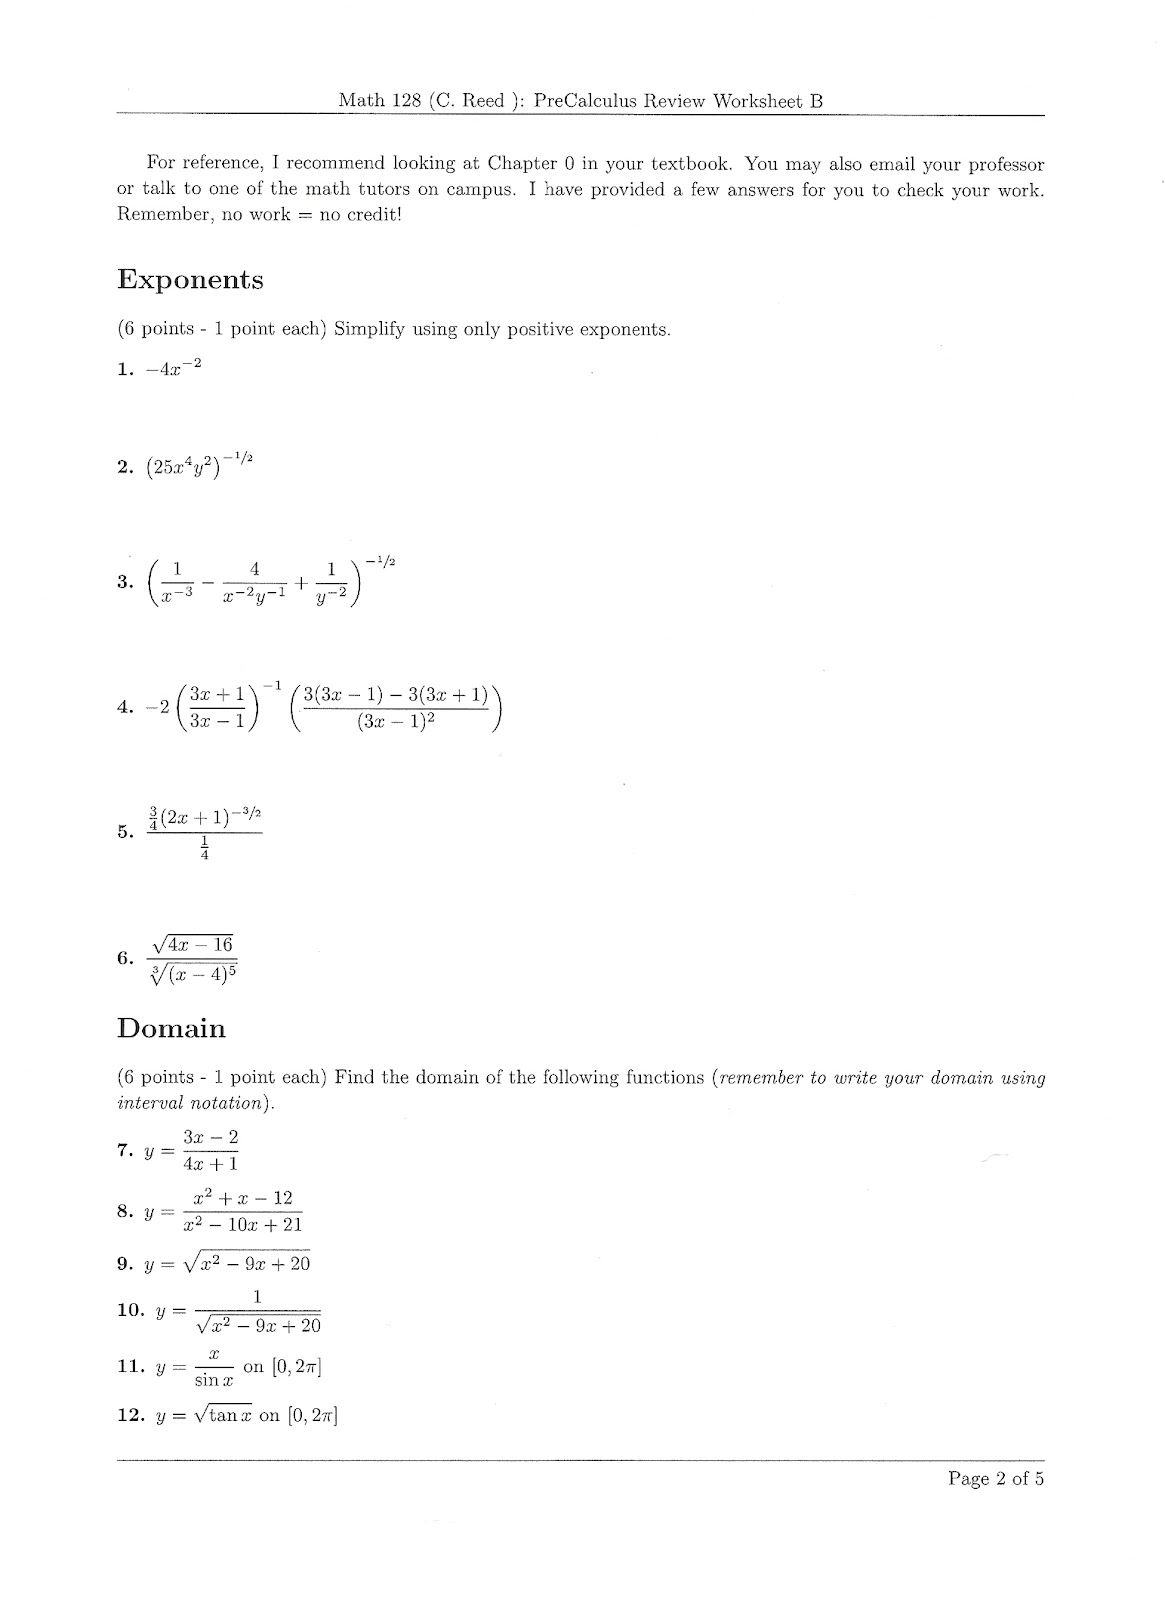 Worksheets Precalculus Worksheets precalculus worksheet free worksheets library download and print this is an extra practice for algebra 2 or precalculus